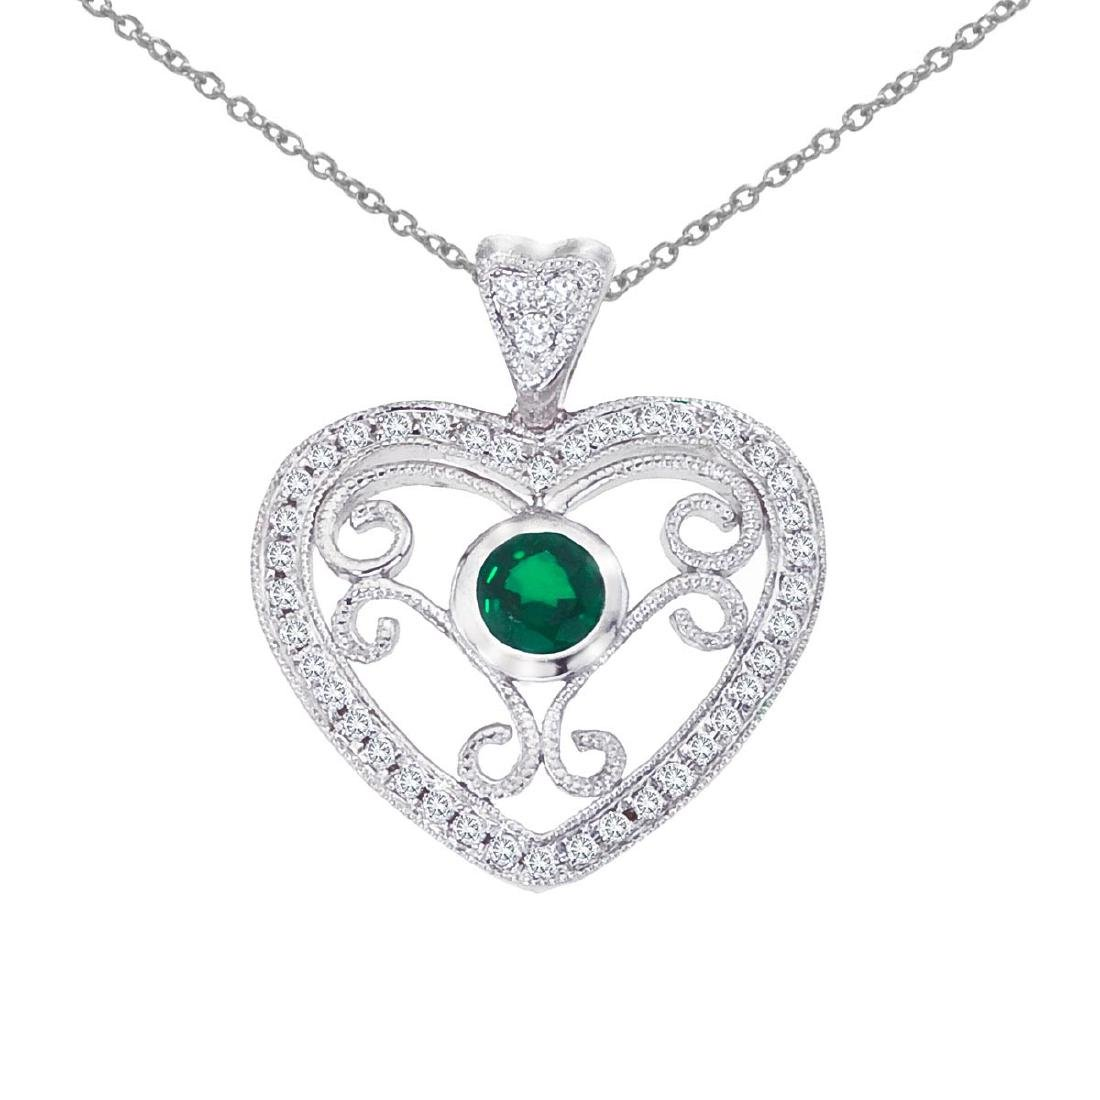 Certified 14k White Gold Heart Shaped Filigree Emerald